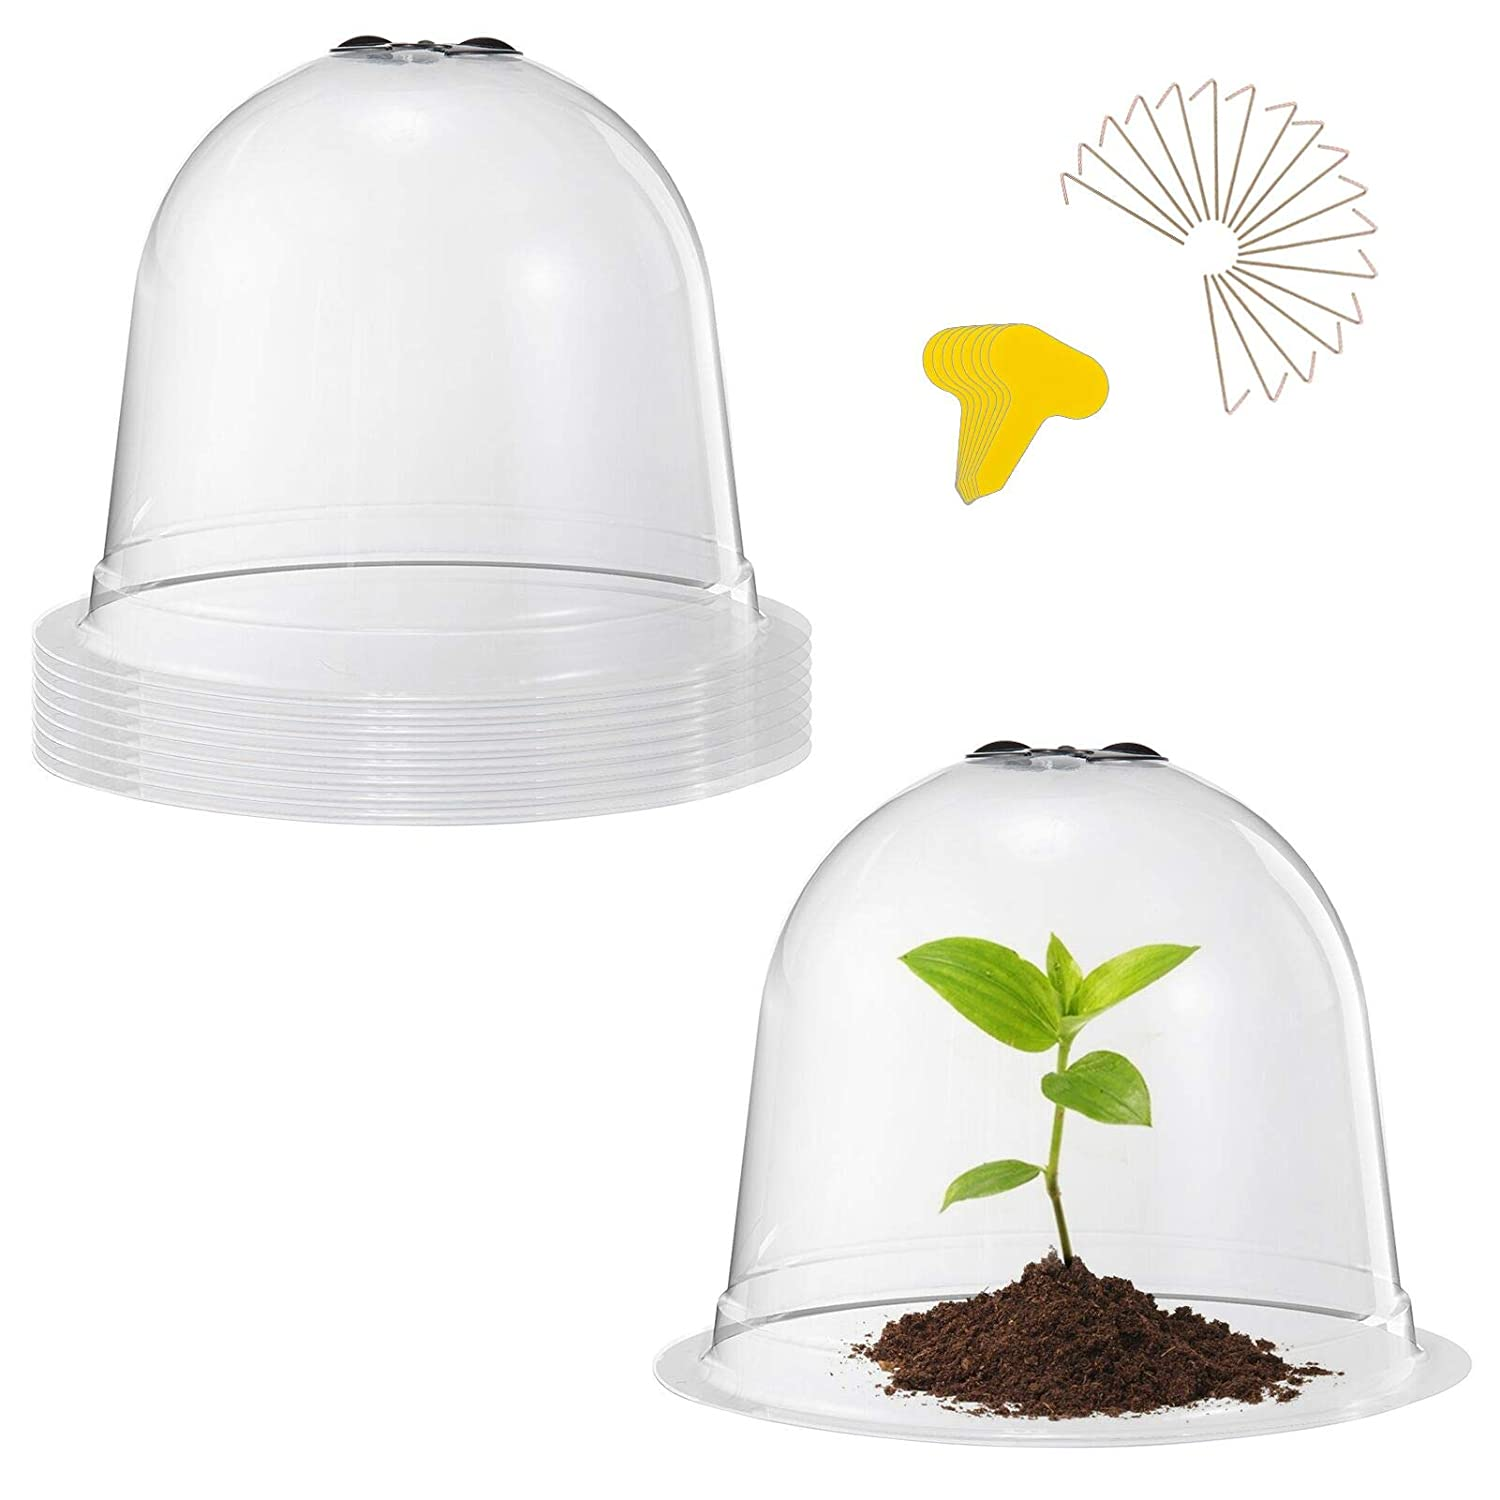 6pcs Reusable Plastic Mini Greenhouse Plant Protector Dome Plant Bell Cover Seeds Germination Cover Frost Guard Anti-Freeze Protection Garden Plastic Cloche